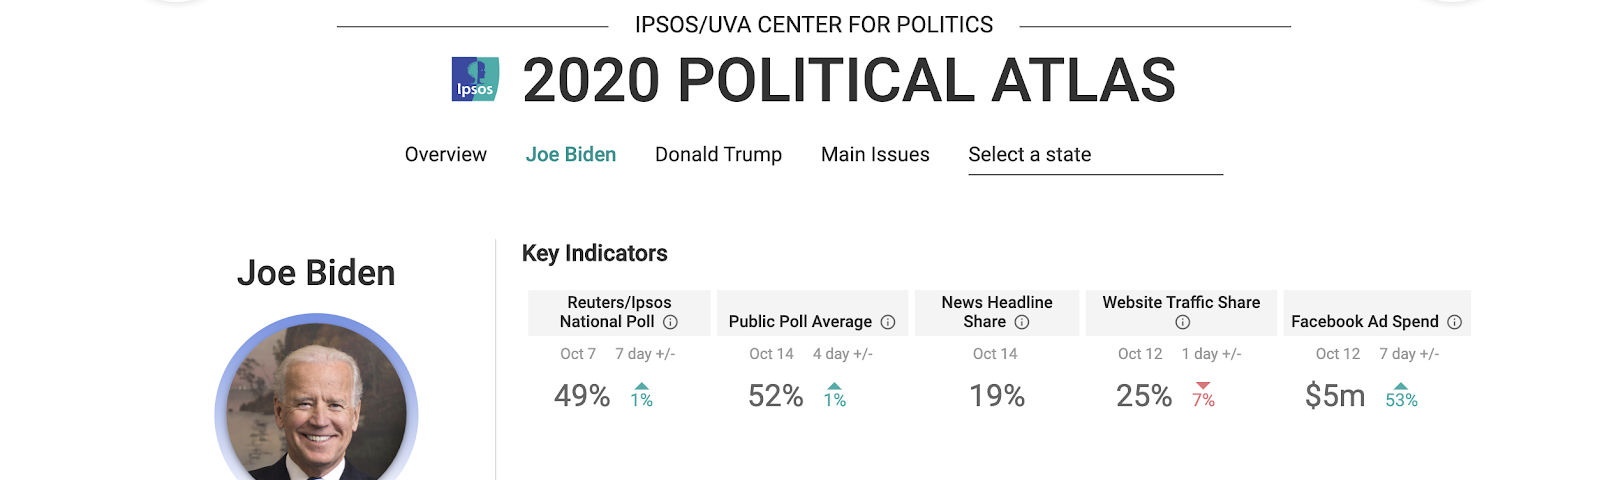 Interactive charts and graphs of Joe Biden's polling and sentiment data points in the presidential race against Donald Trump.